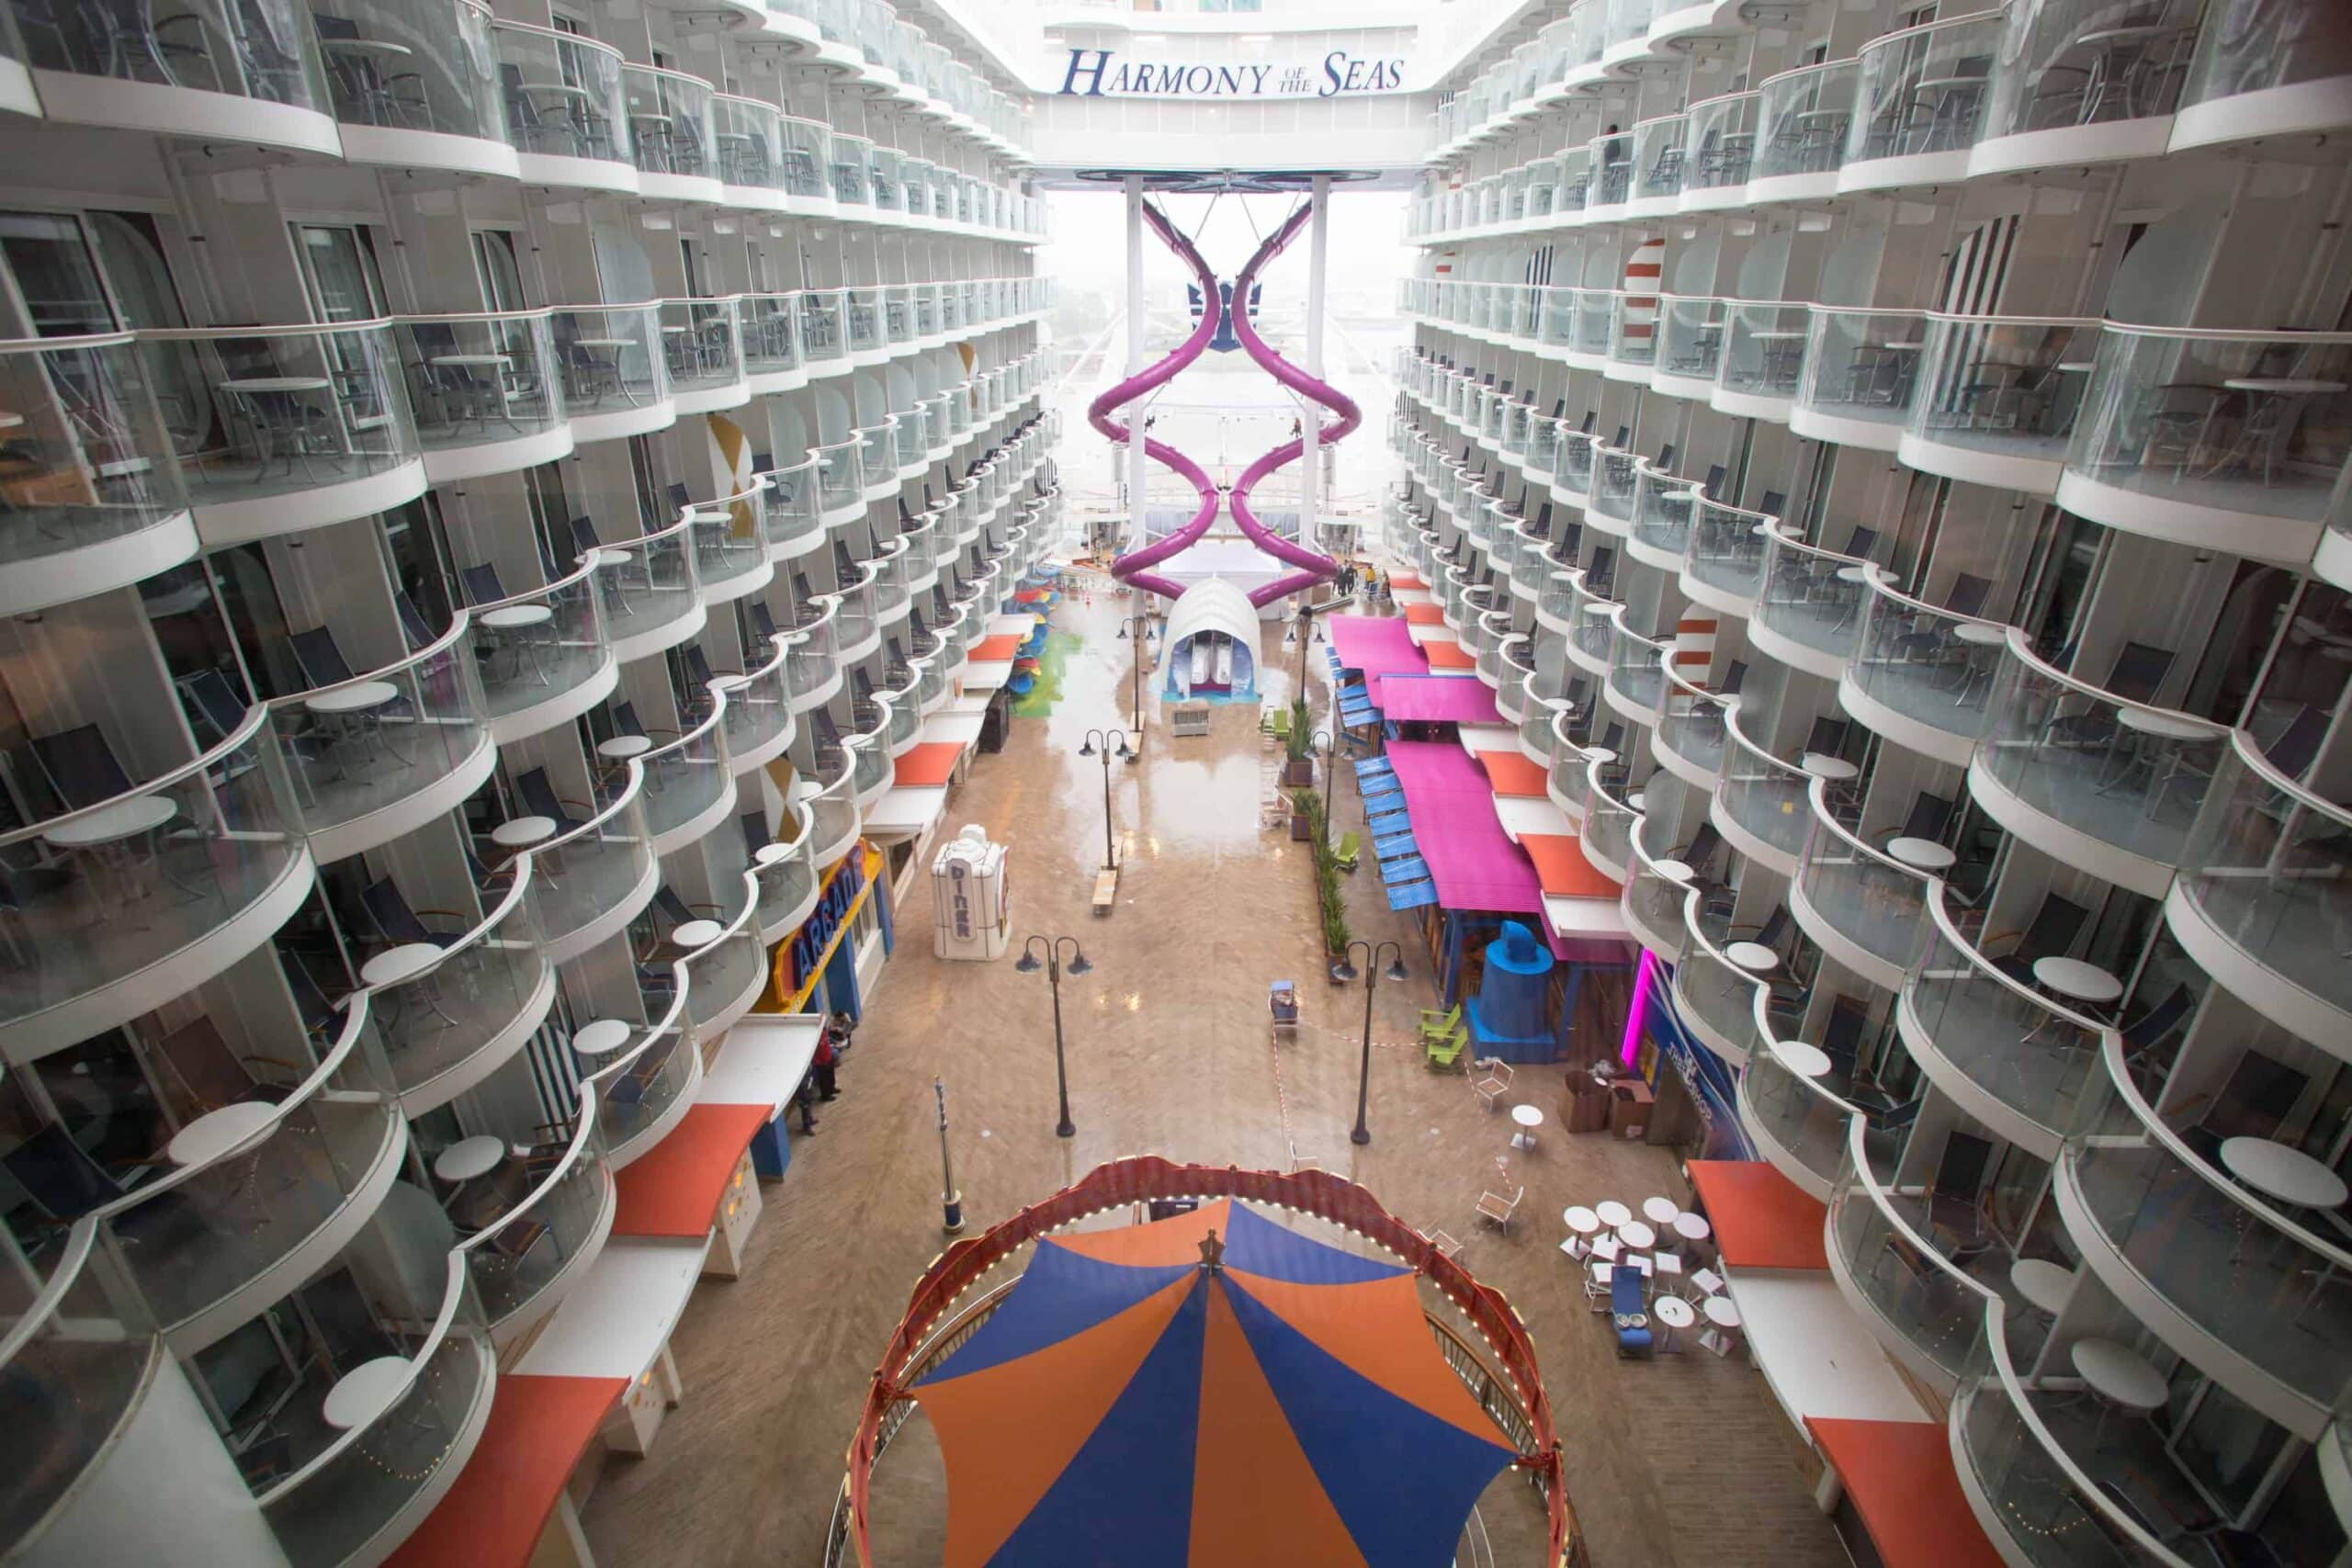 Royal Caribbean International's Harmony of the Seas, the world's largest and newest cruise ship, previews in Southampton, UK. General views of the ship. Board Walk